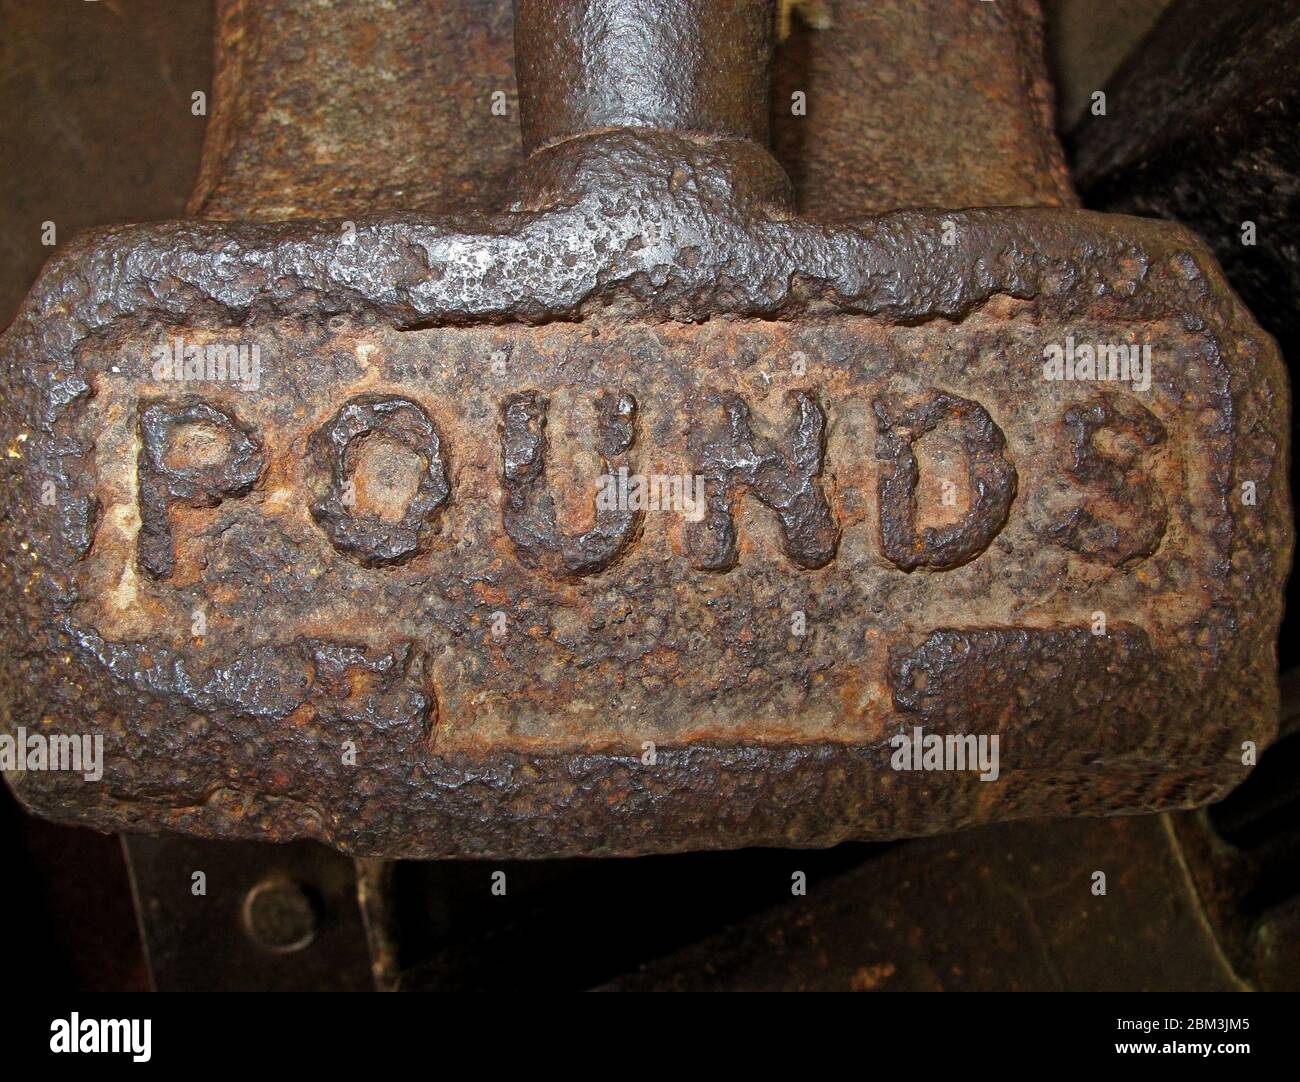 GoTonySmith,HotpixUK,@HotpixUK,Cotton,Manchester,industry,factory,mill,history,machines,cloth,manufacture,Lancashire,factory system,Victorian,rust,letters,lettering,Pound spelt out,Pound spelled out,Pounds spelled out